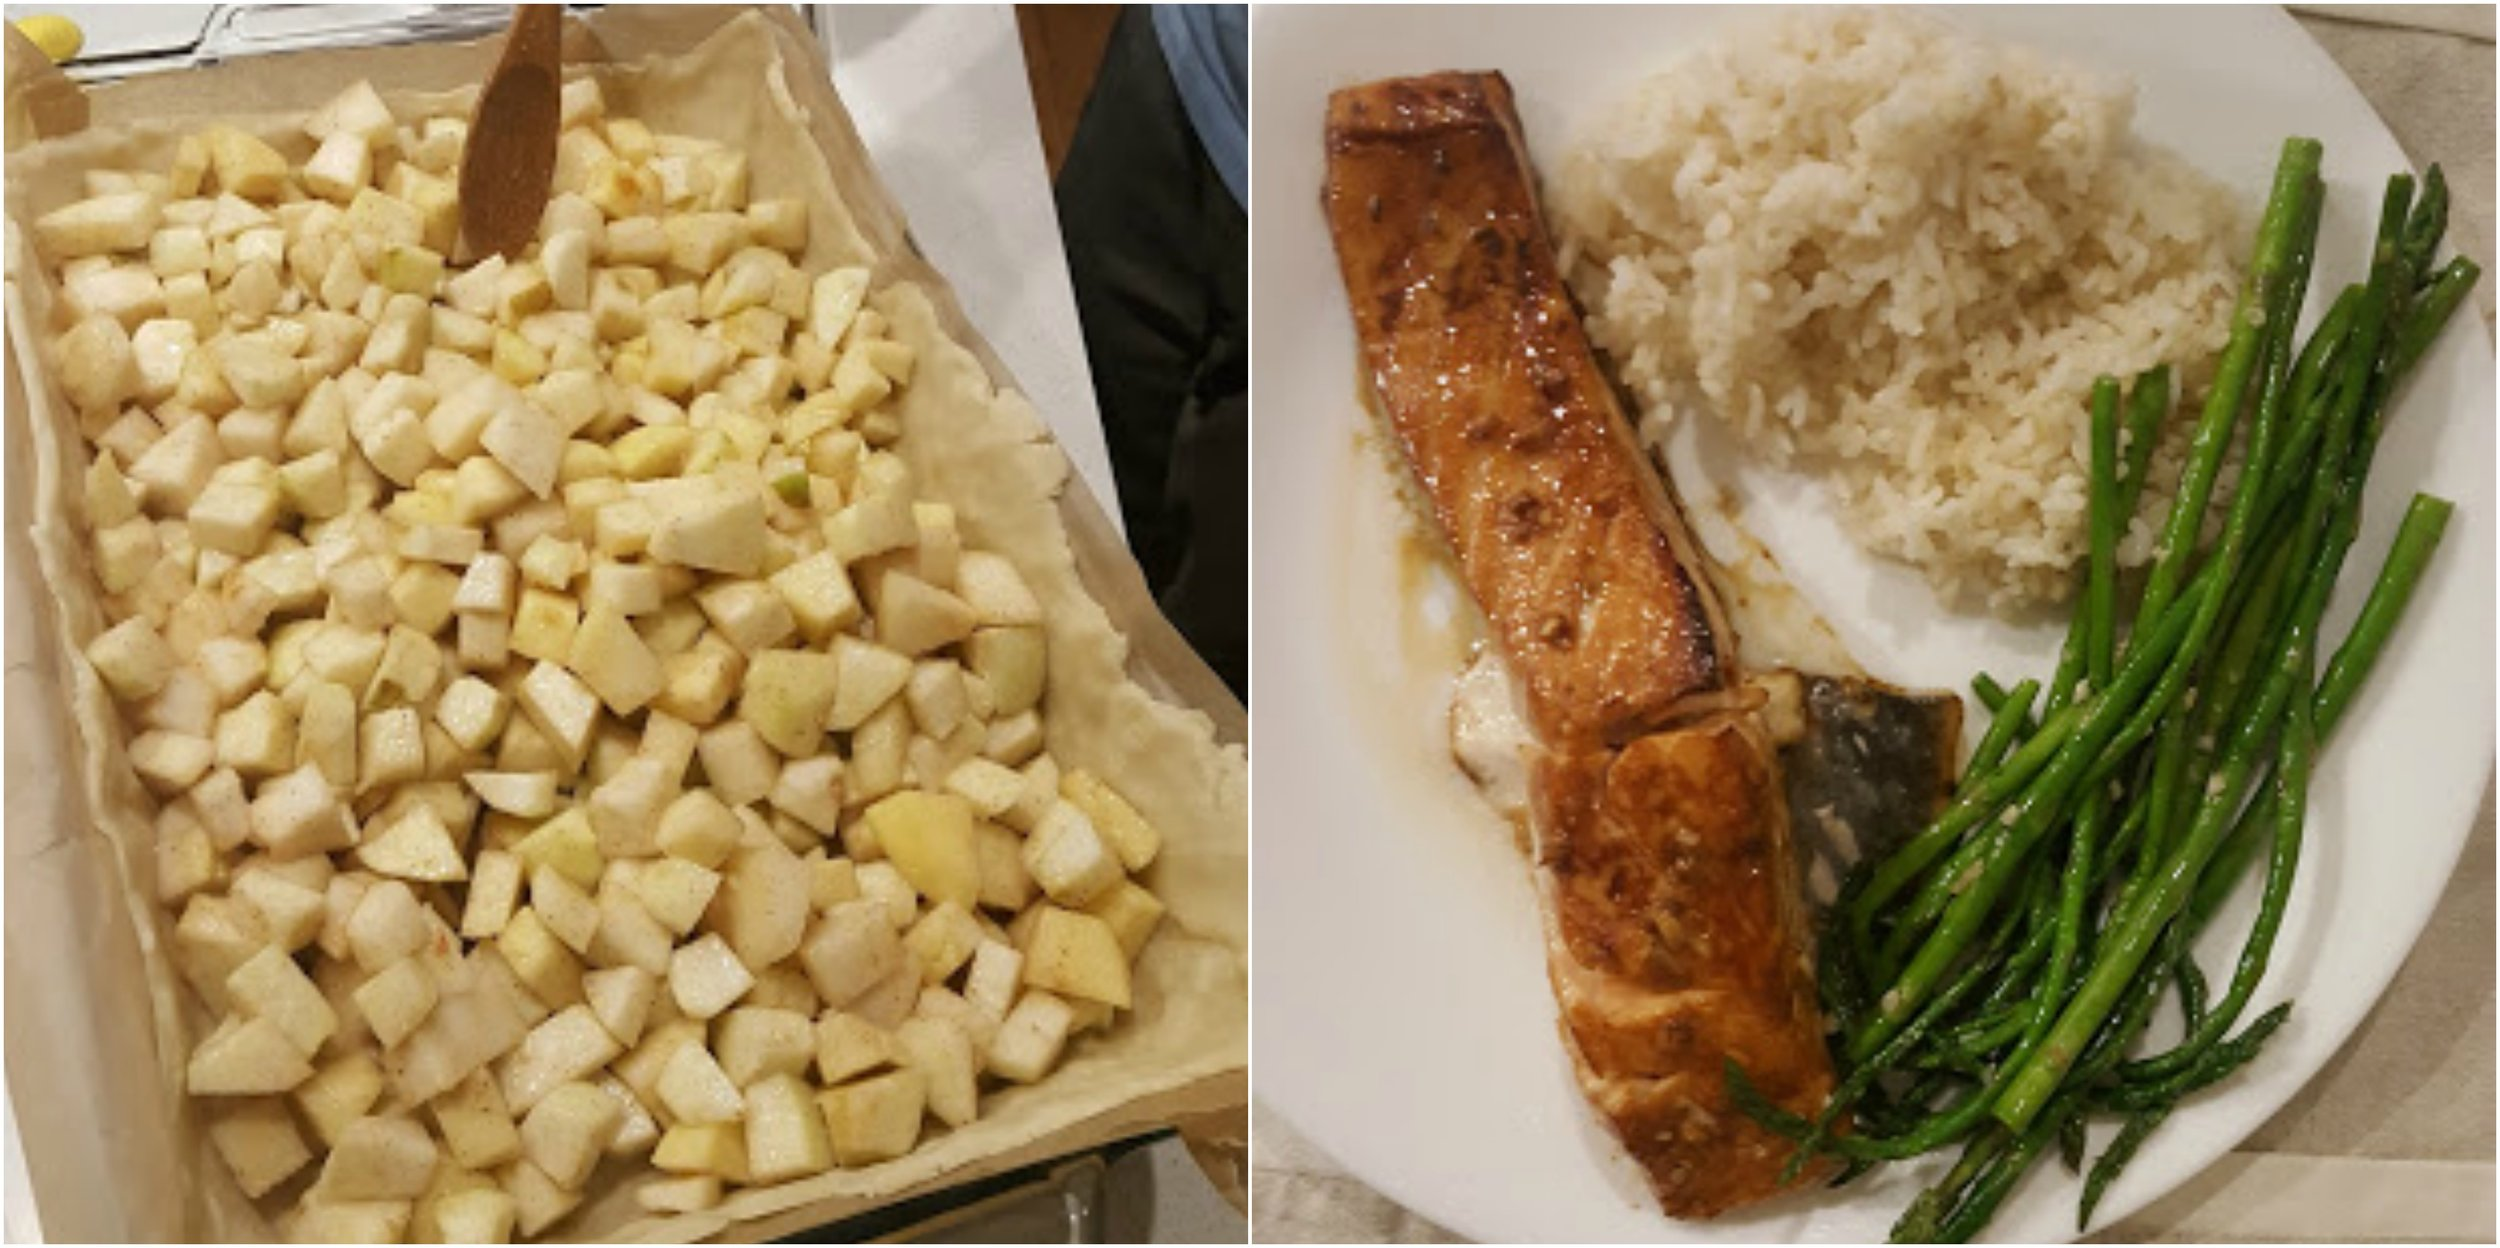 Apple pie in the making (left) & baked salmon and asparagus dinner (right)